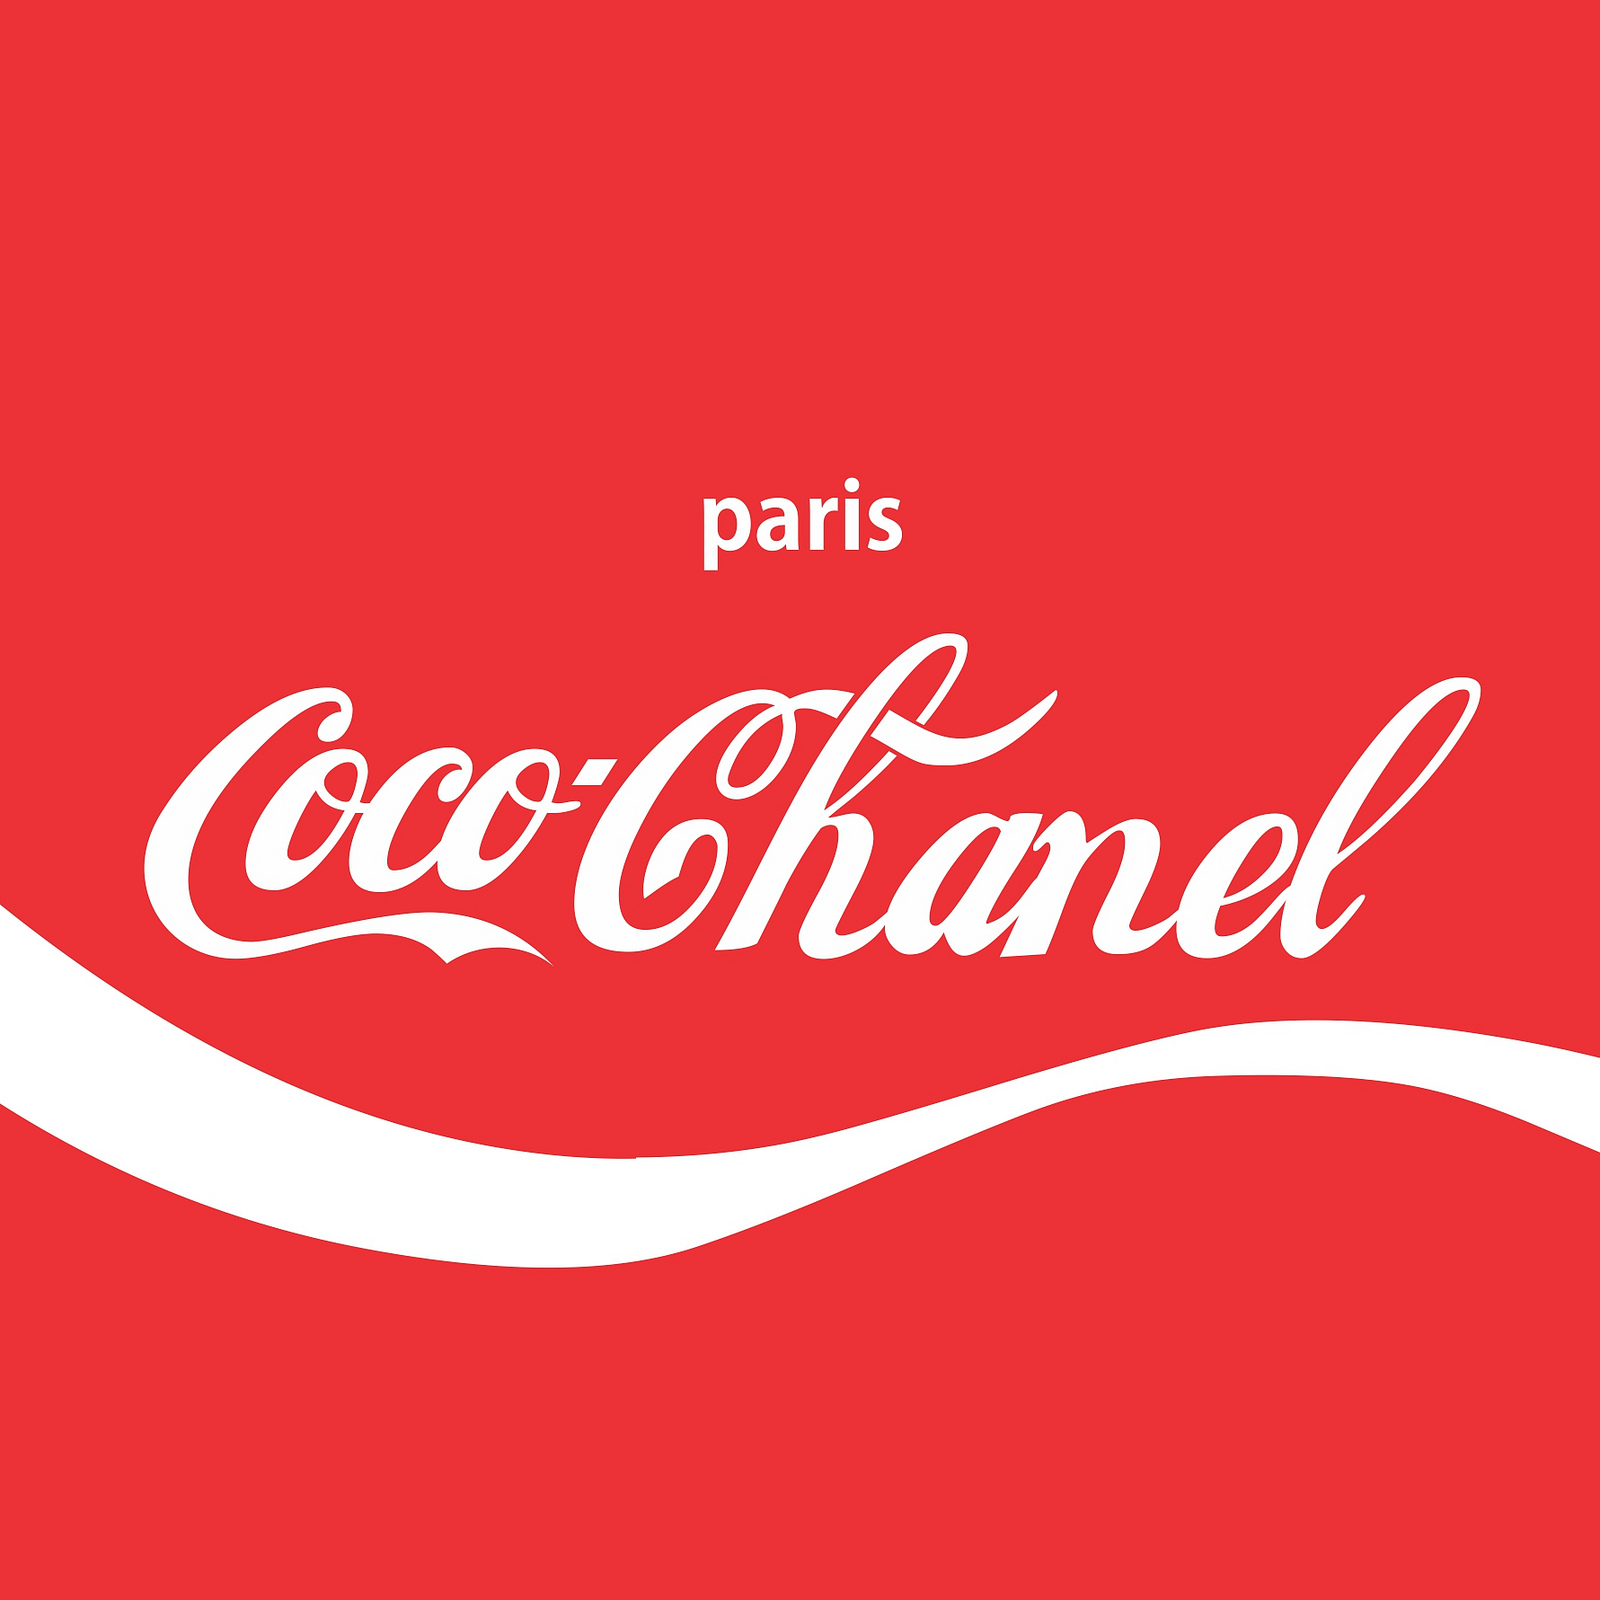 Coco Chanel Logo Tumblr Coco chanel 1600x1600